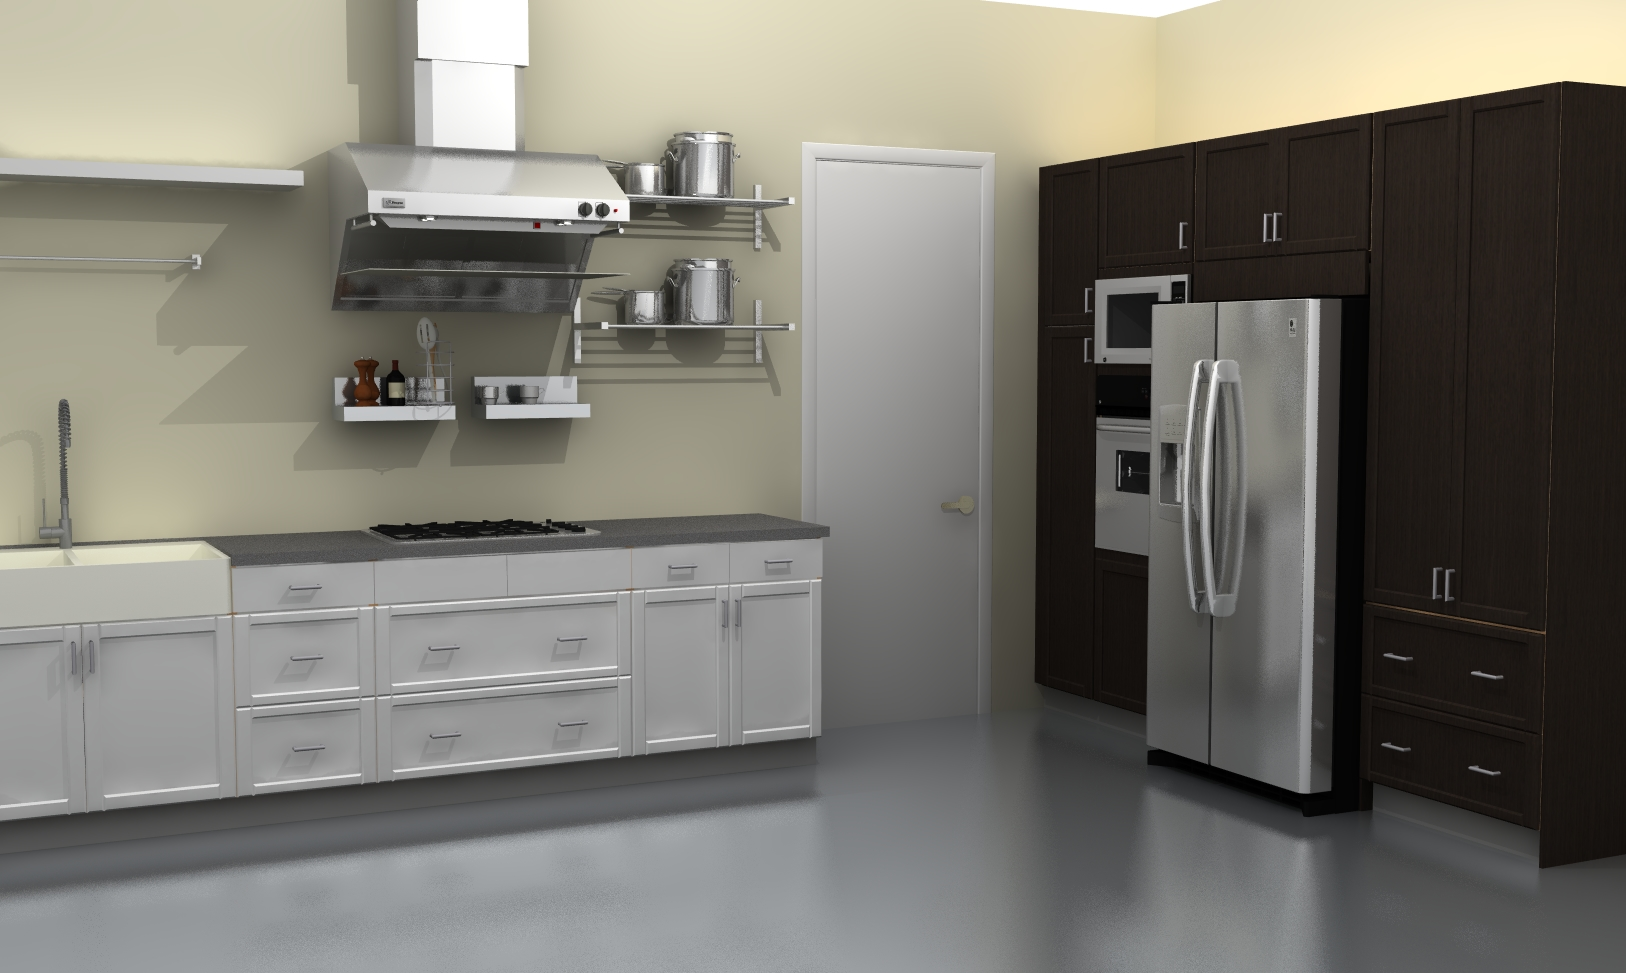 Ikea Cabinet With Frosted Glass ~ GRUNDTAL stainless steel shelves and IKEA appliances add to the modern